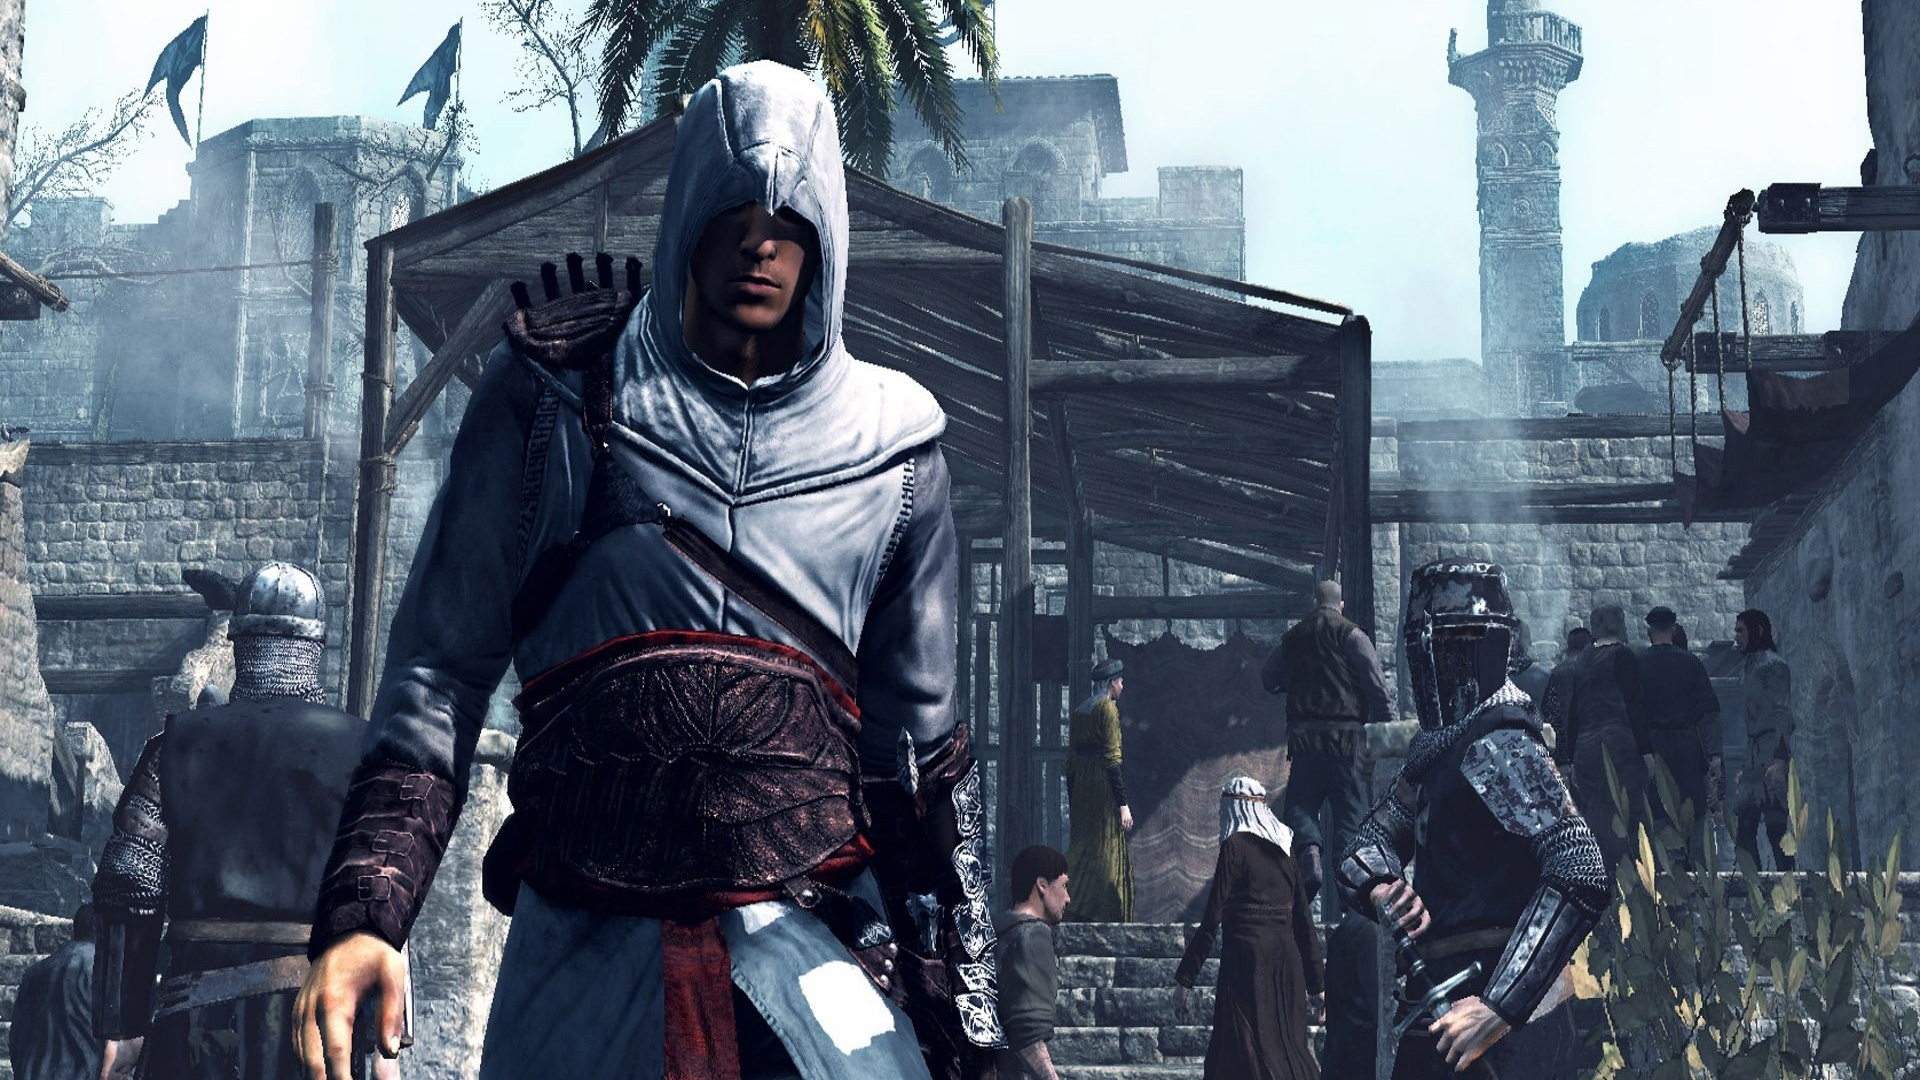 Free Assassin's Creed Wallpaper in 1920x1080